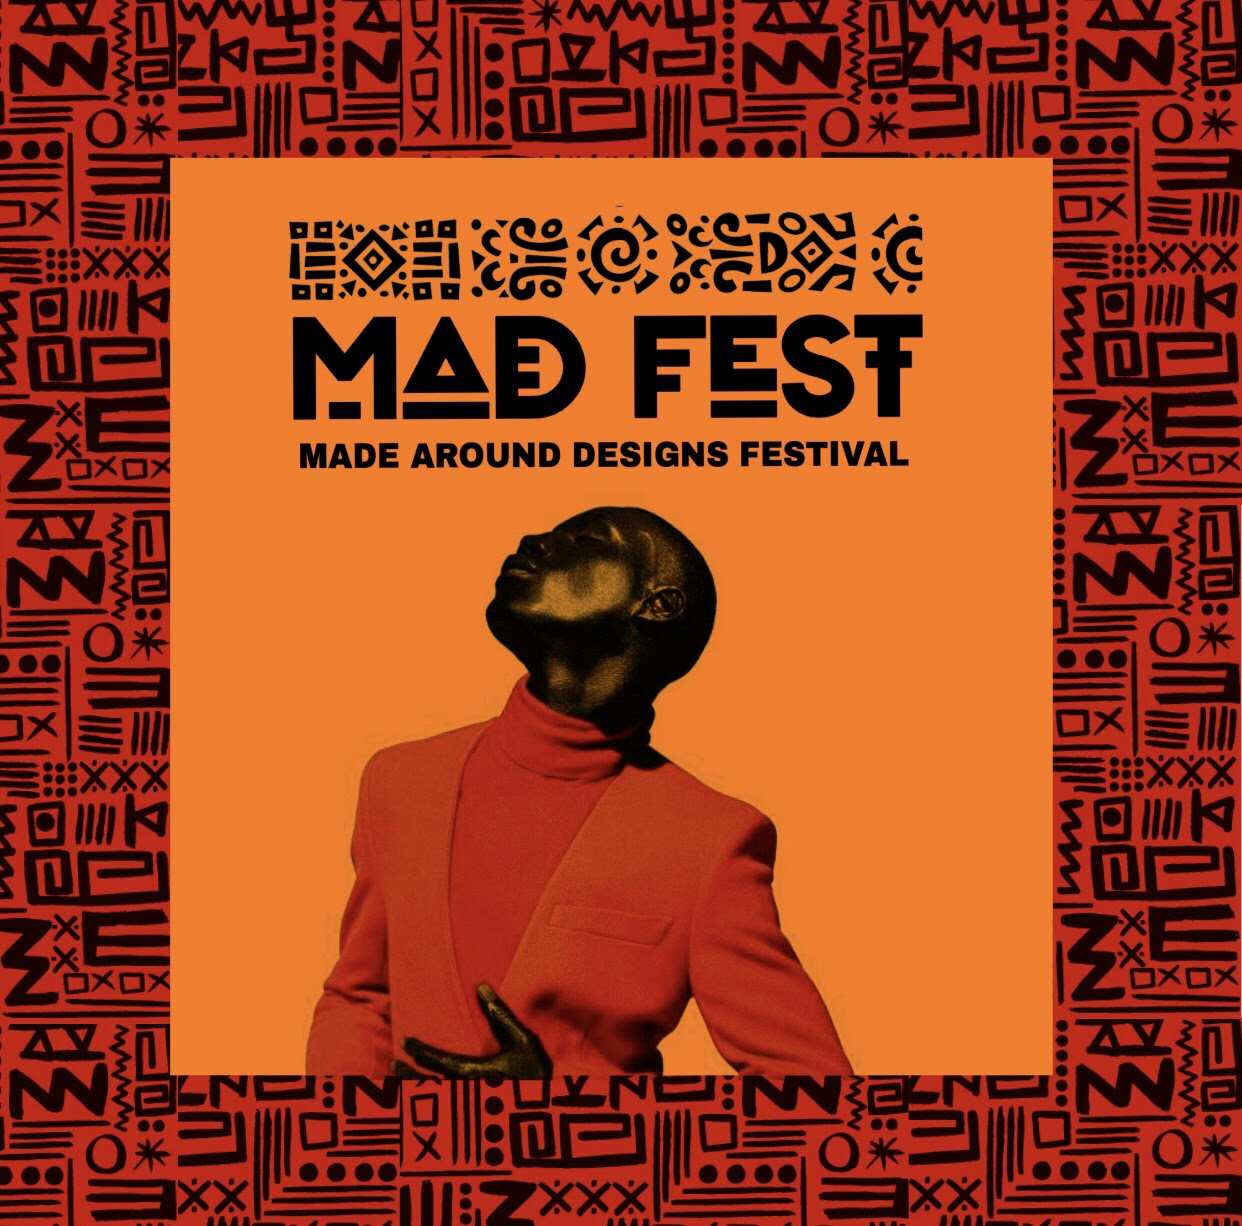 MadFest Tour Sets To Colour The Streets Of Lagos on March 31st